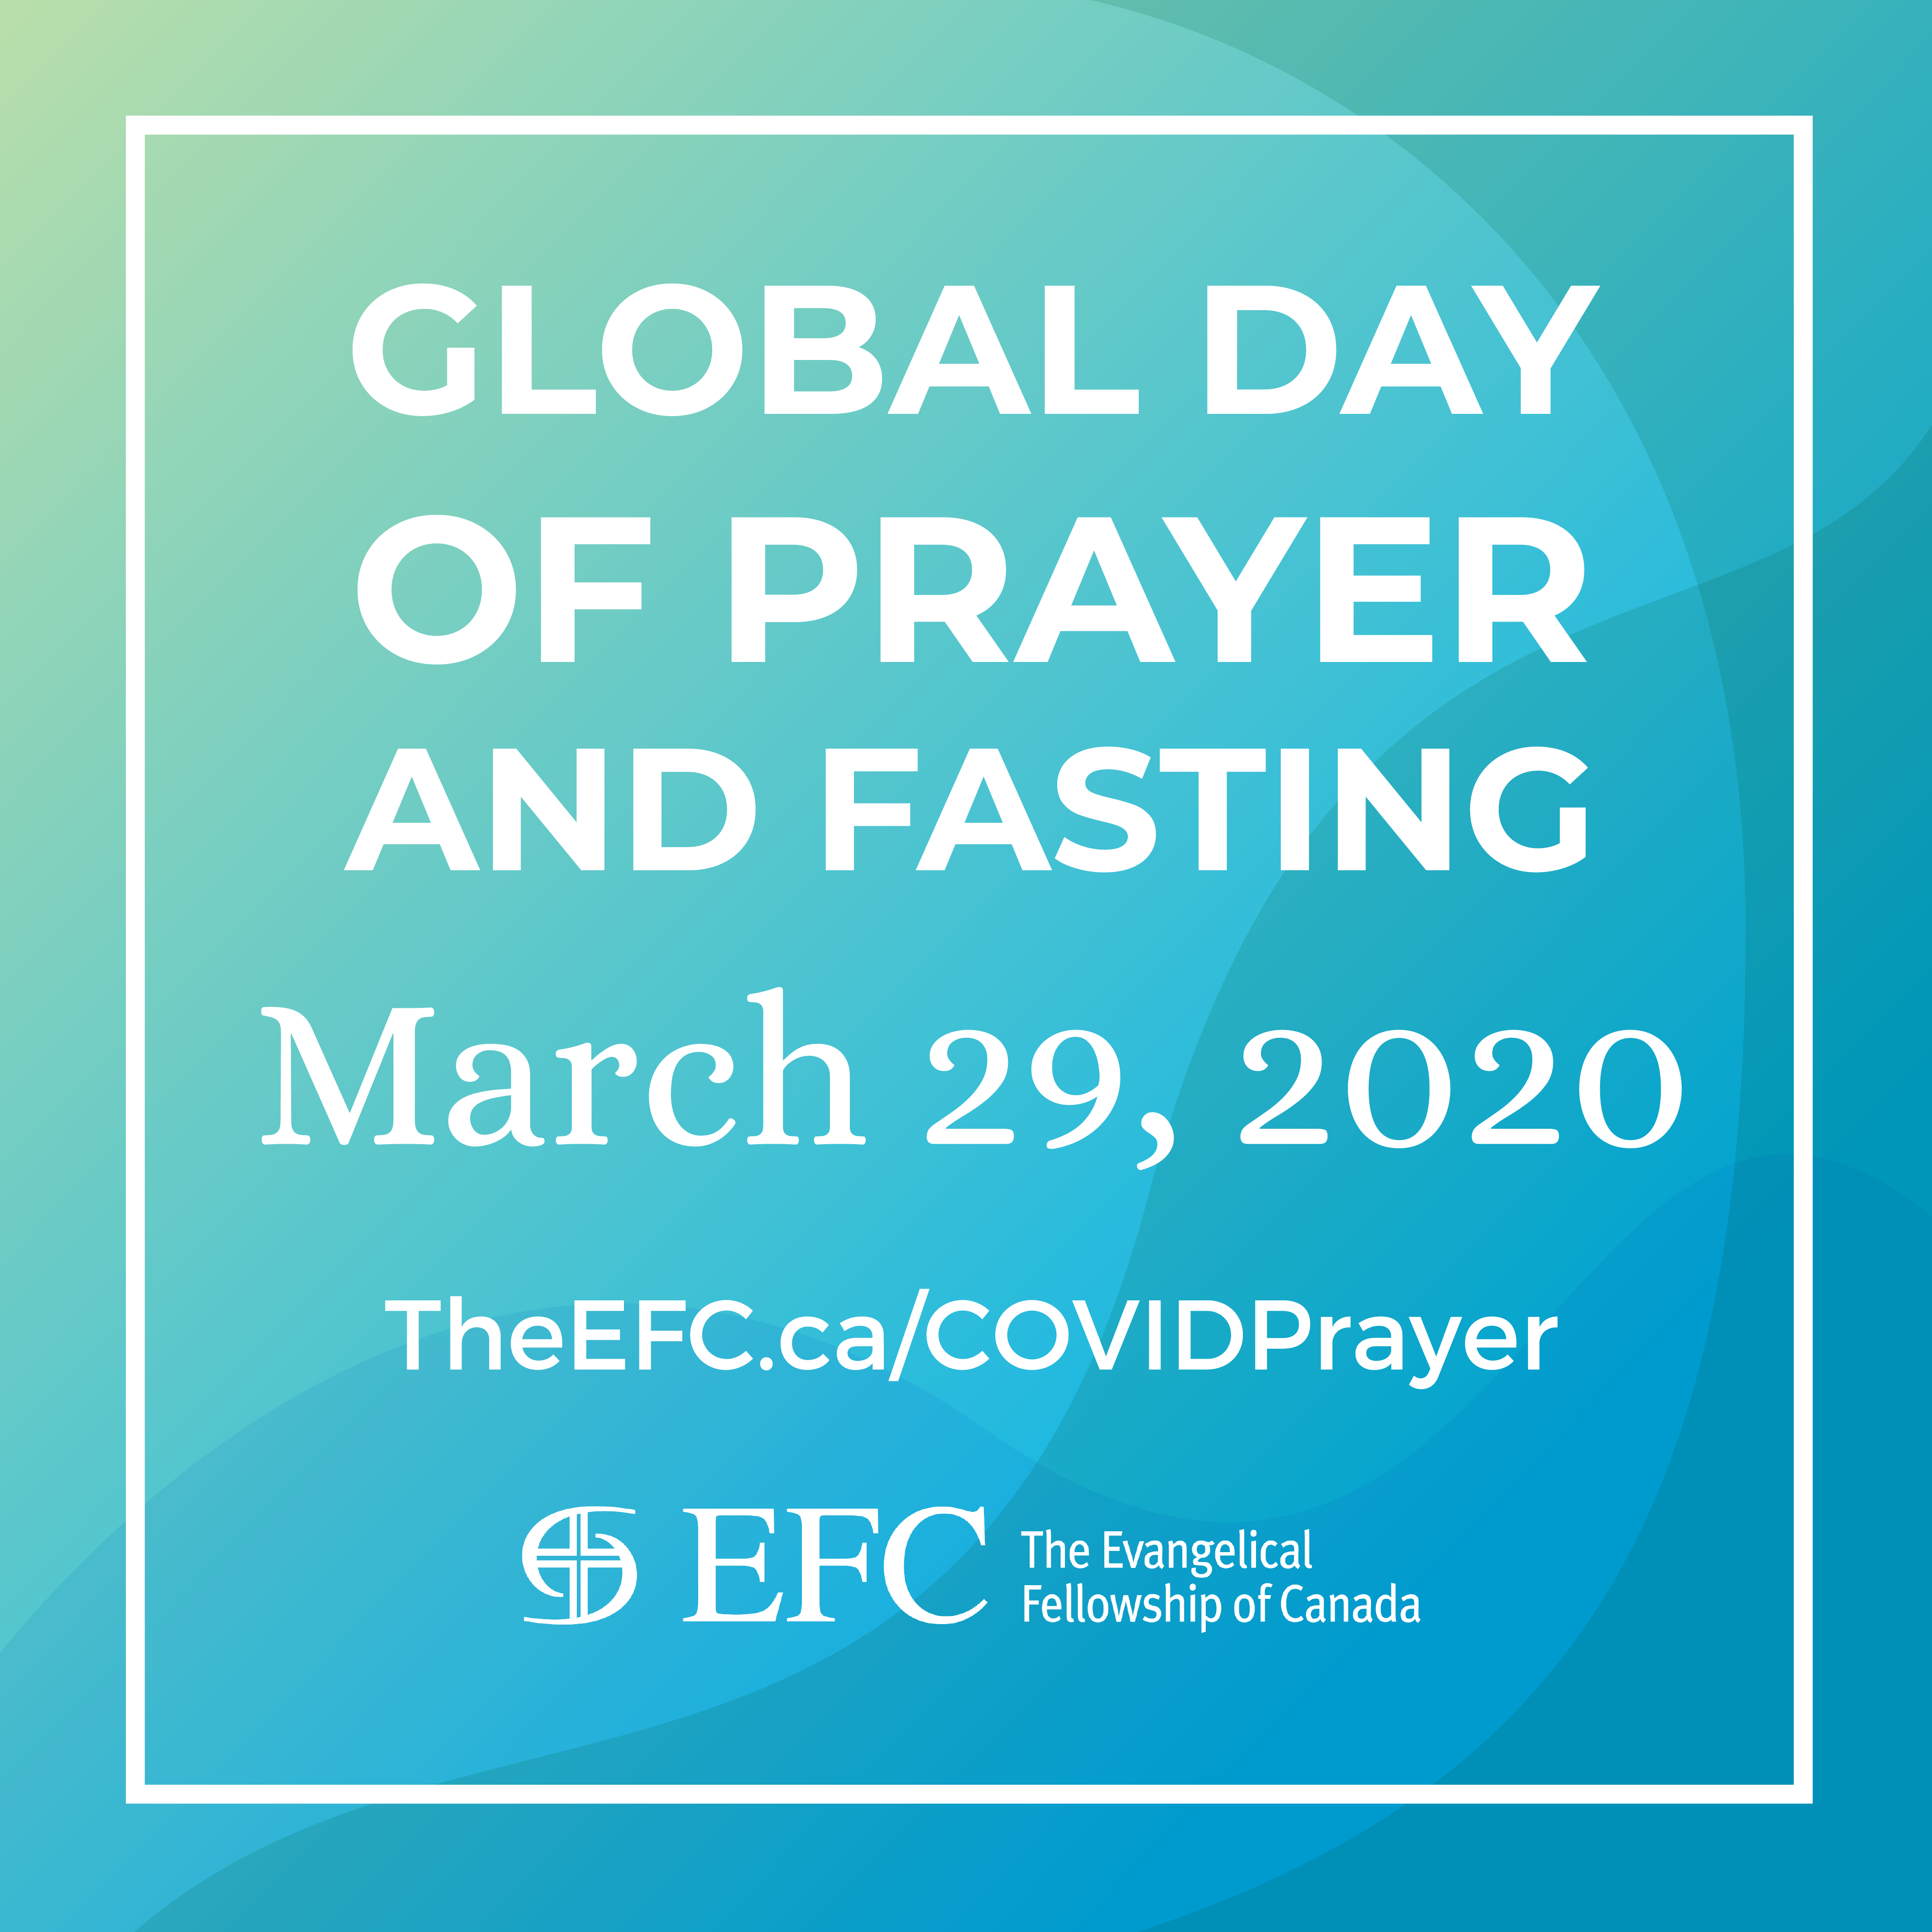 GLOBAL-PRAYER-COVID19-socia-share.png